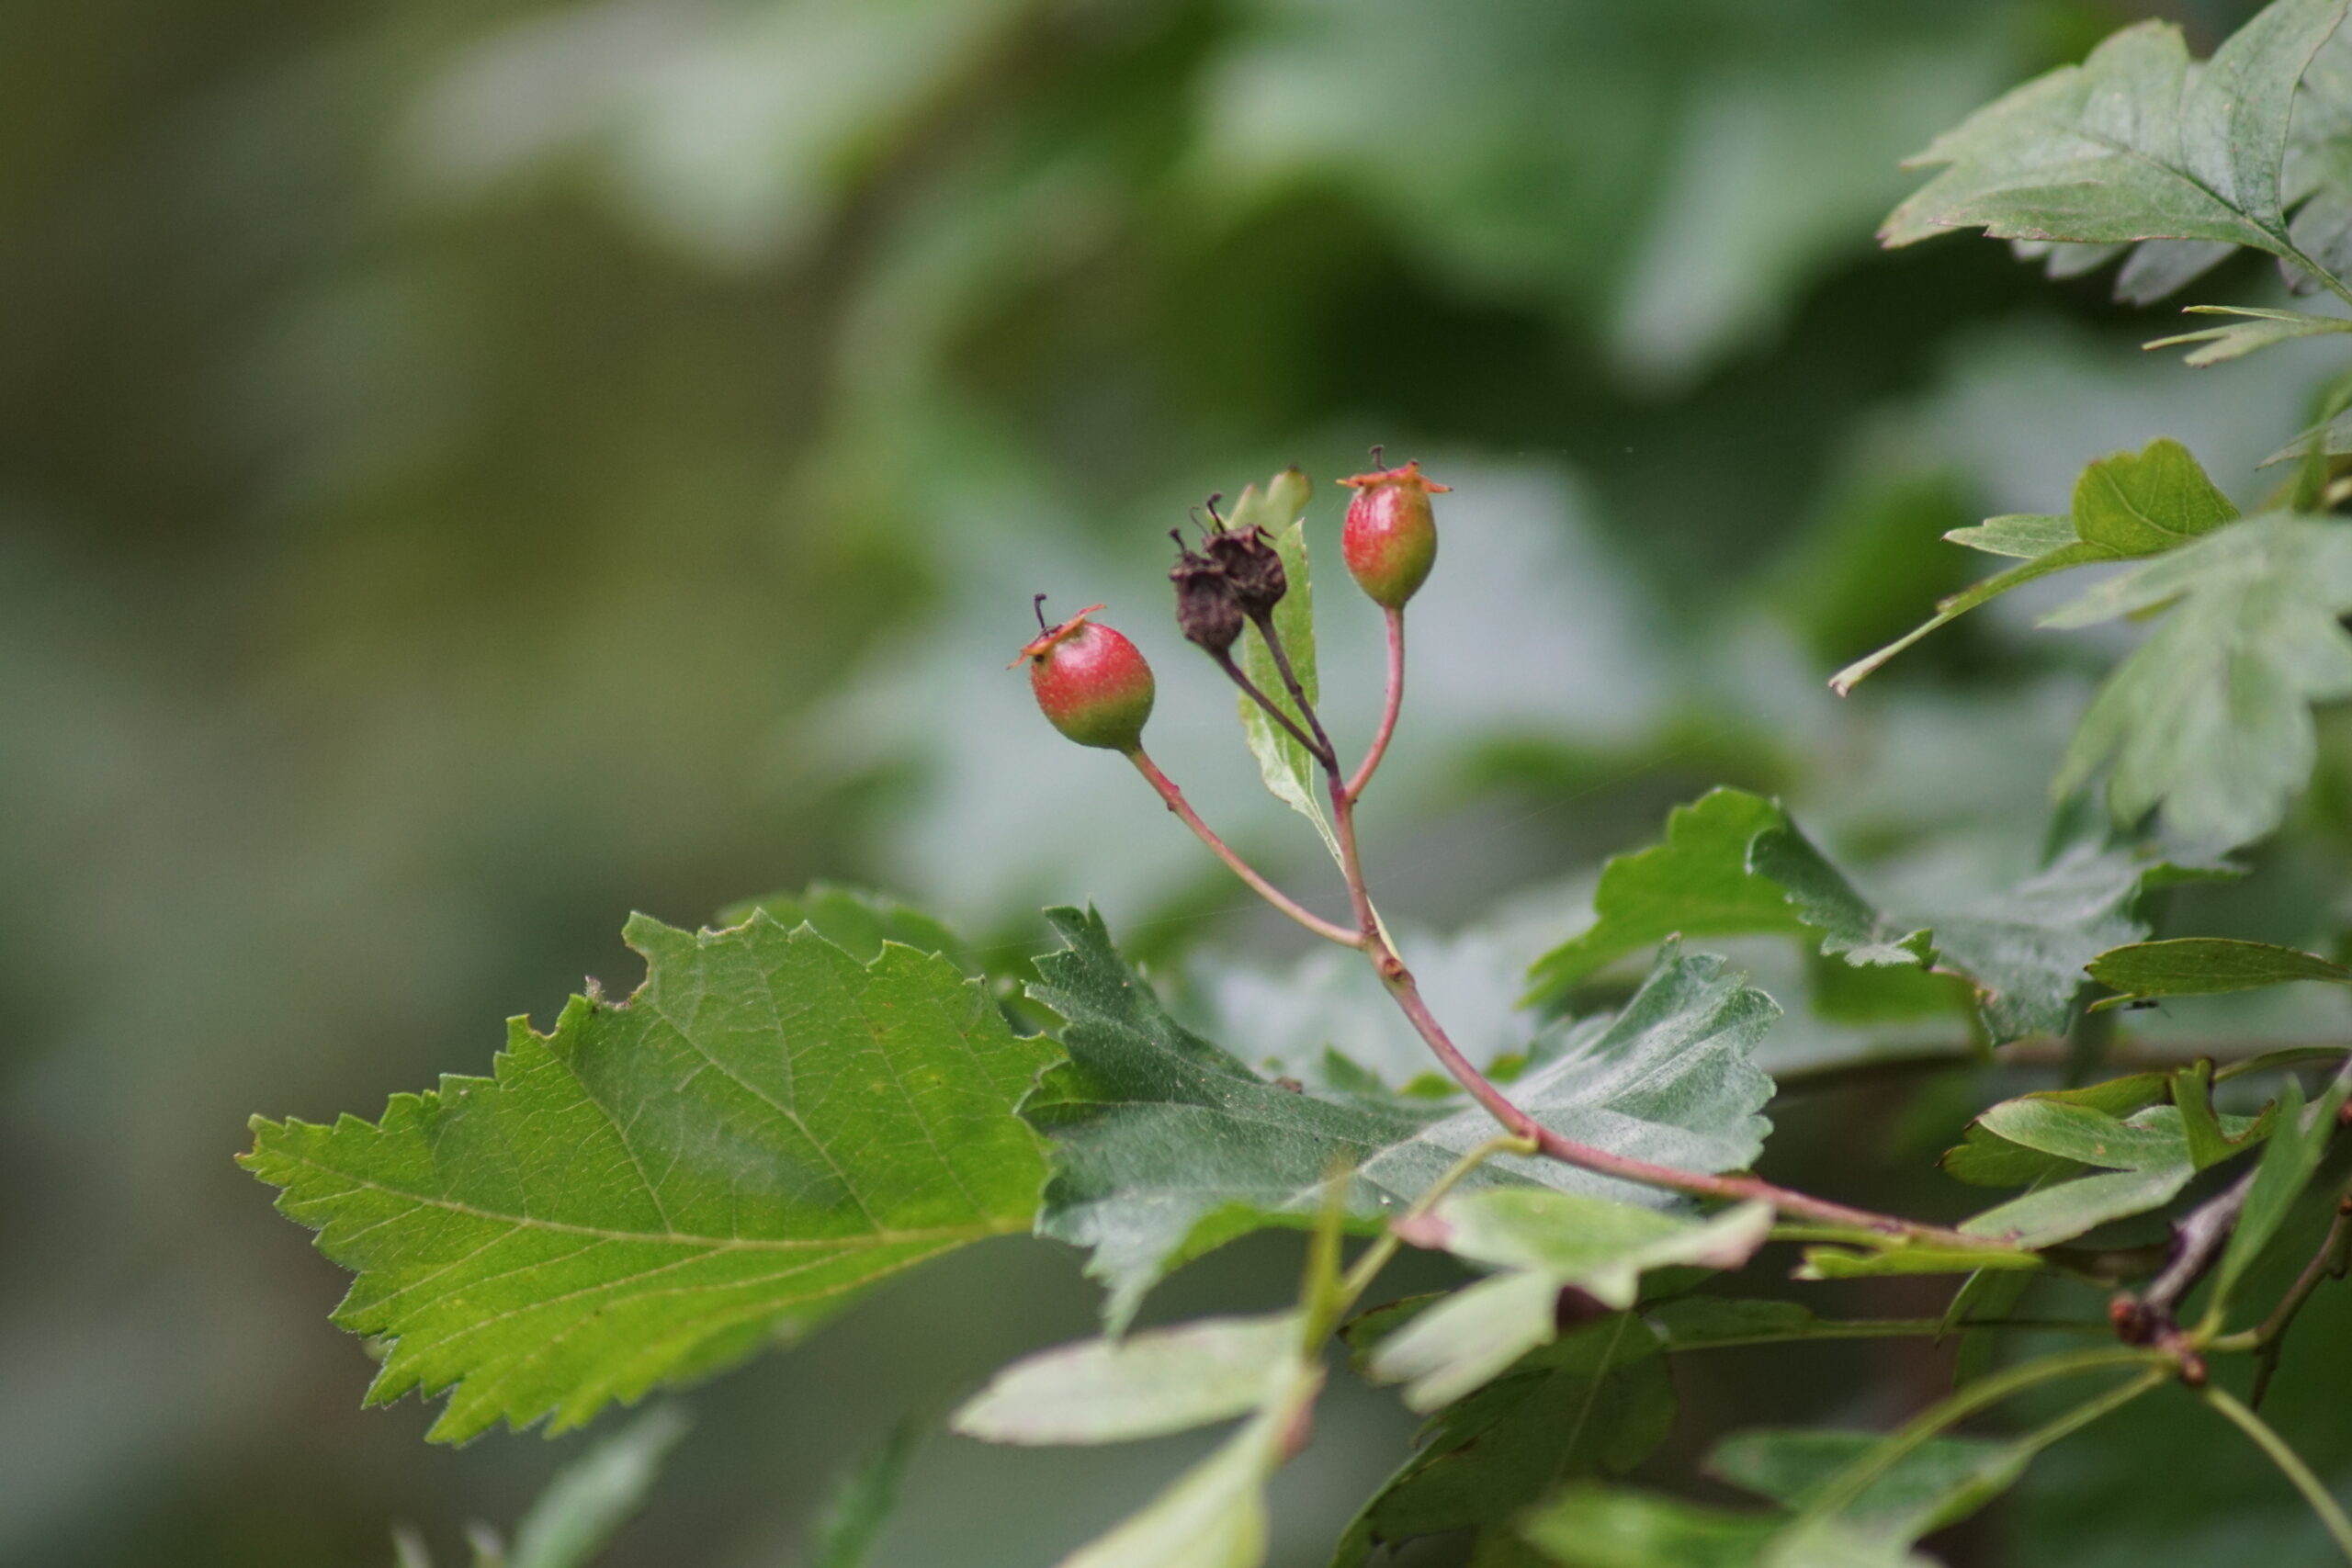 Haws developing on the Hawthorn